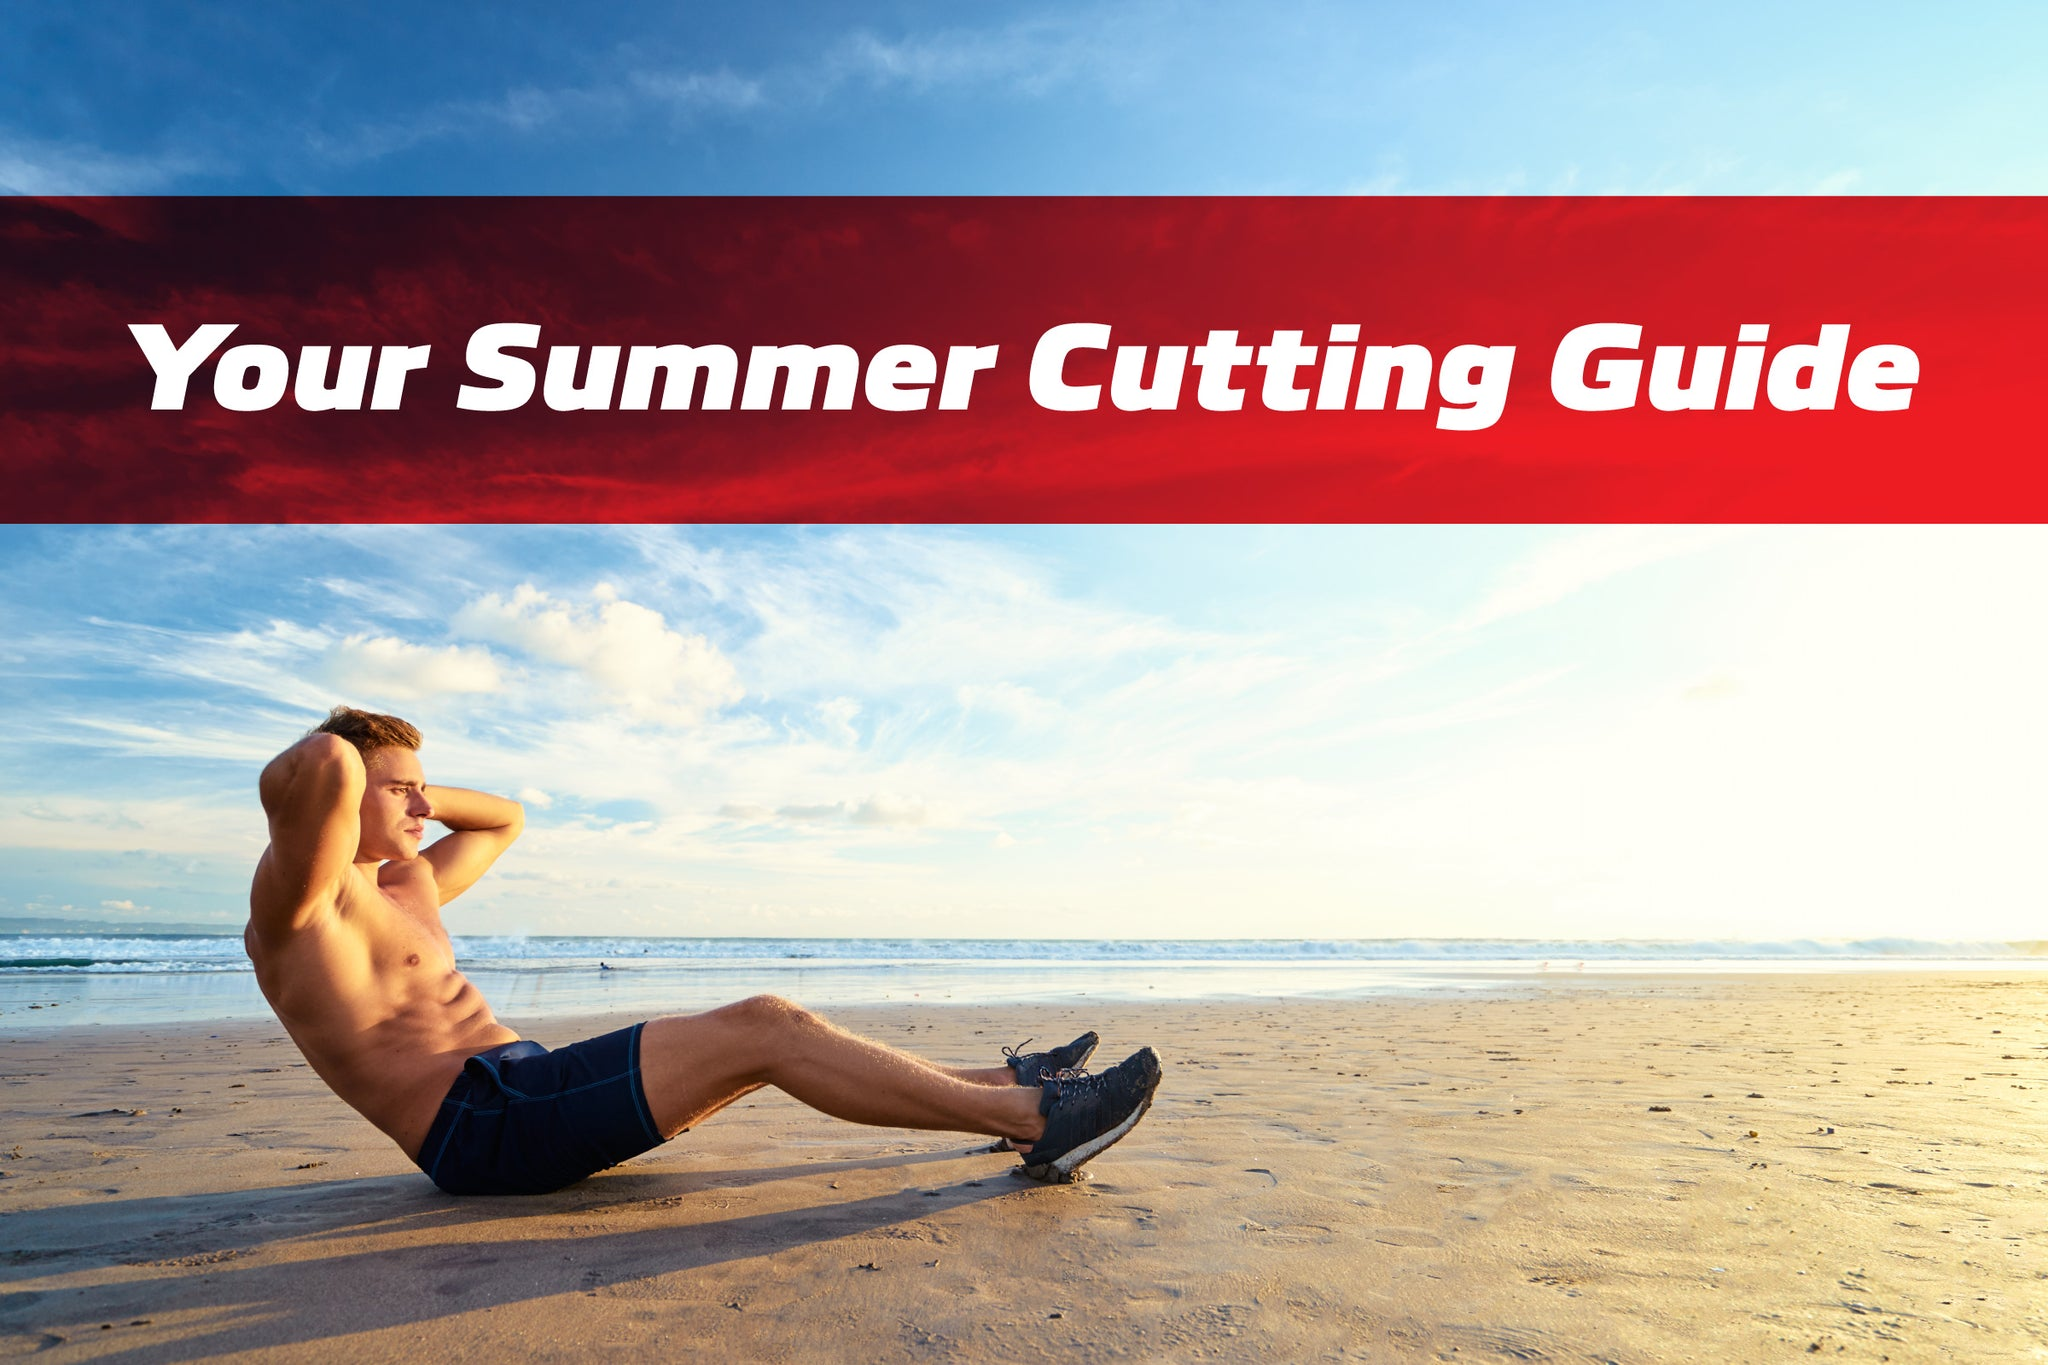 Your summer step-by-step guide to toning up and cutting down